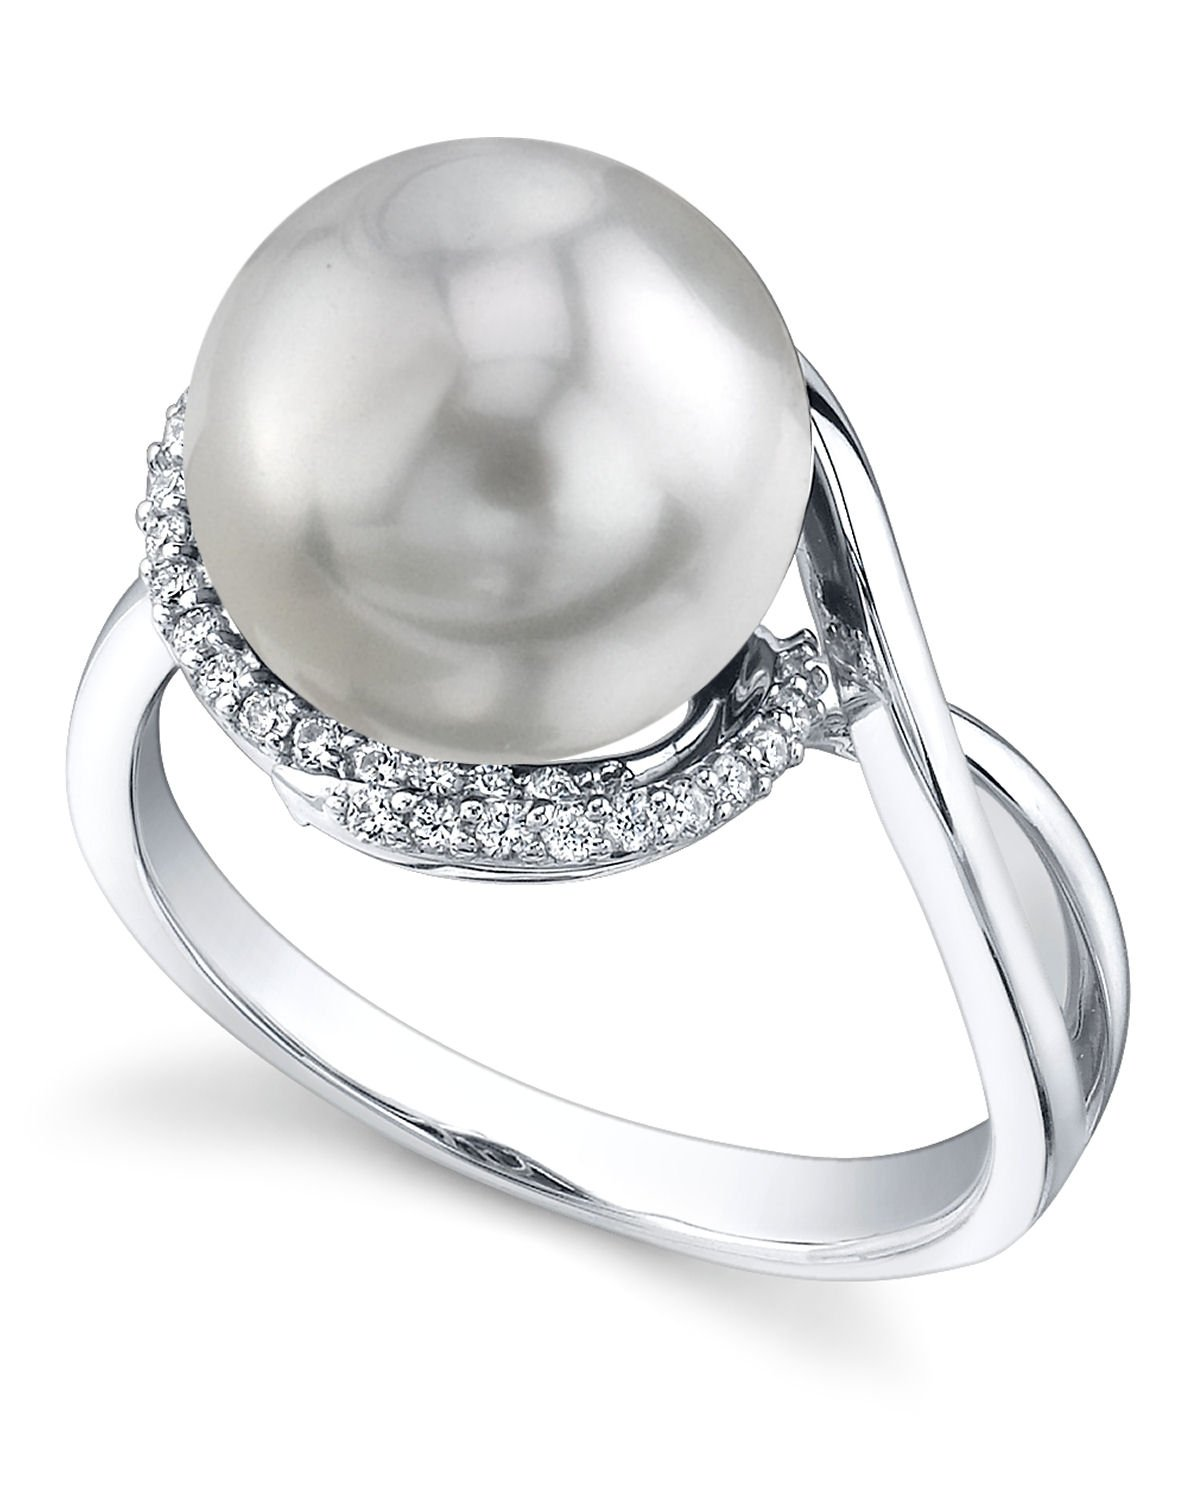 10mm White South Sea Cultured Pearl & Diamond Summer Ring in 14K Gold